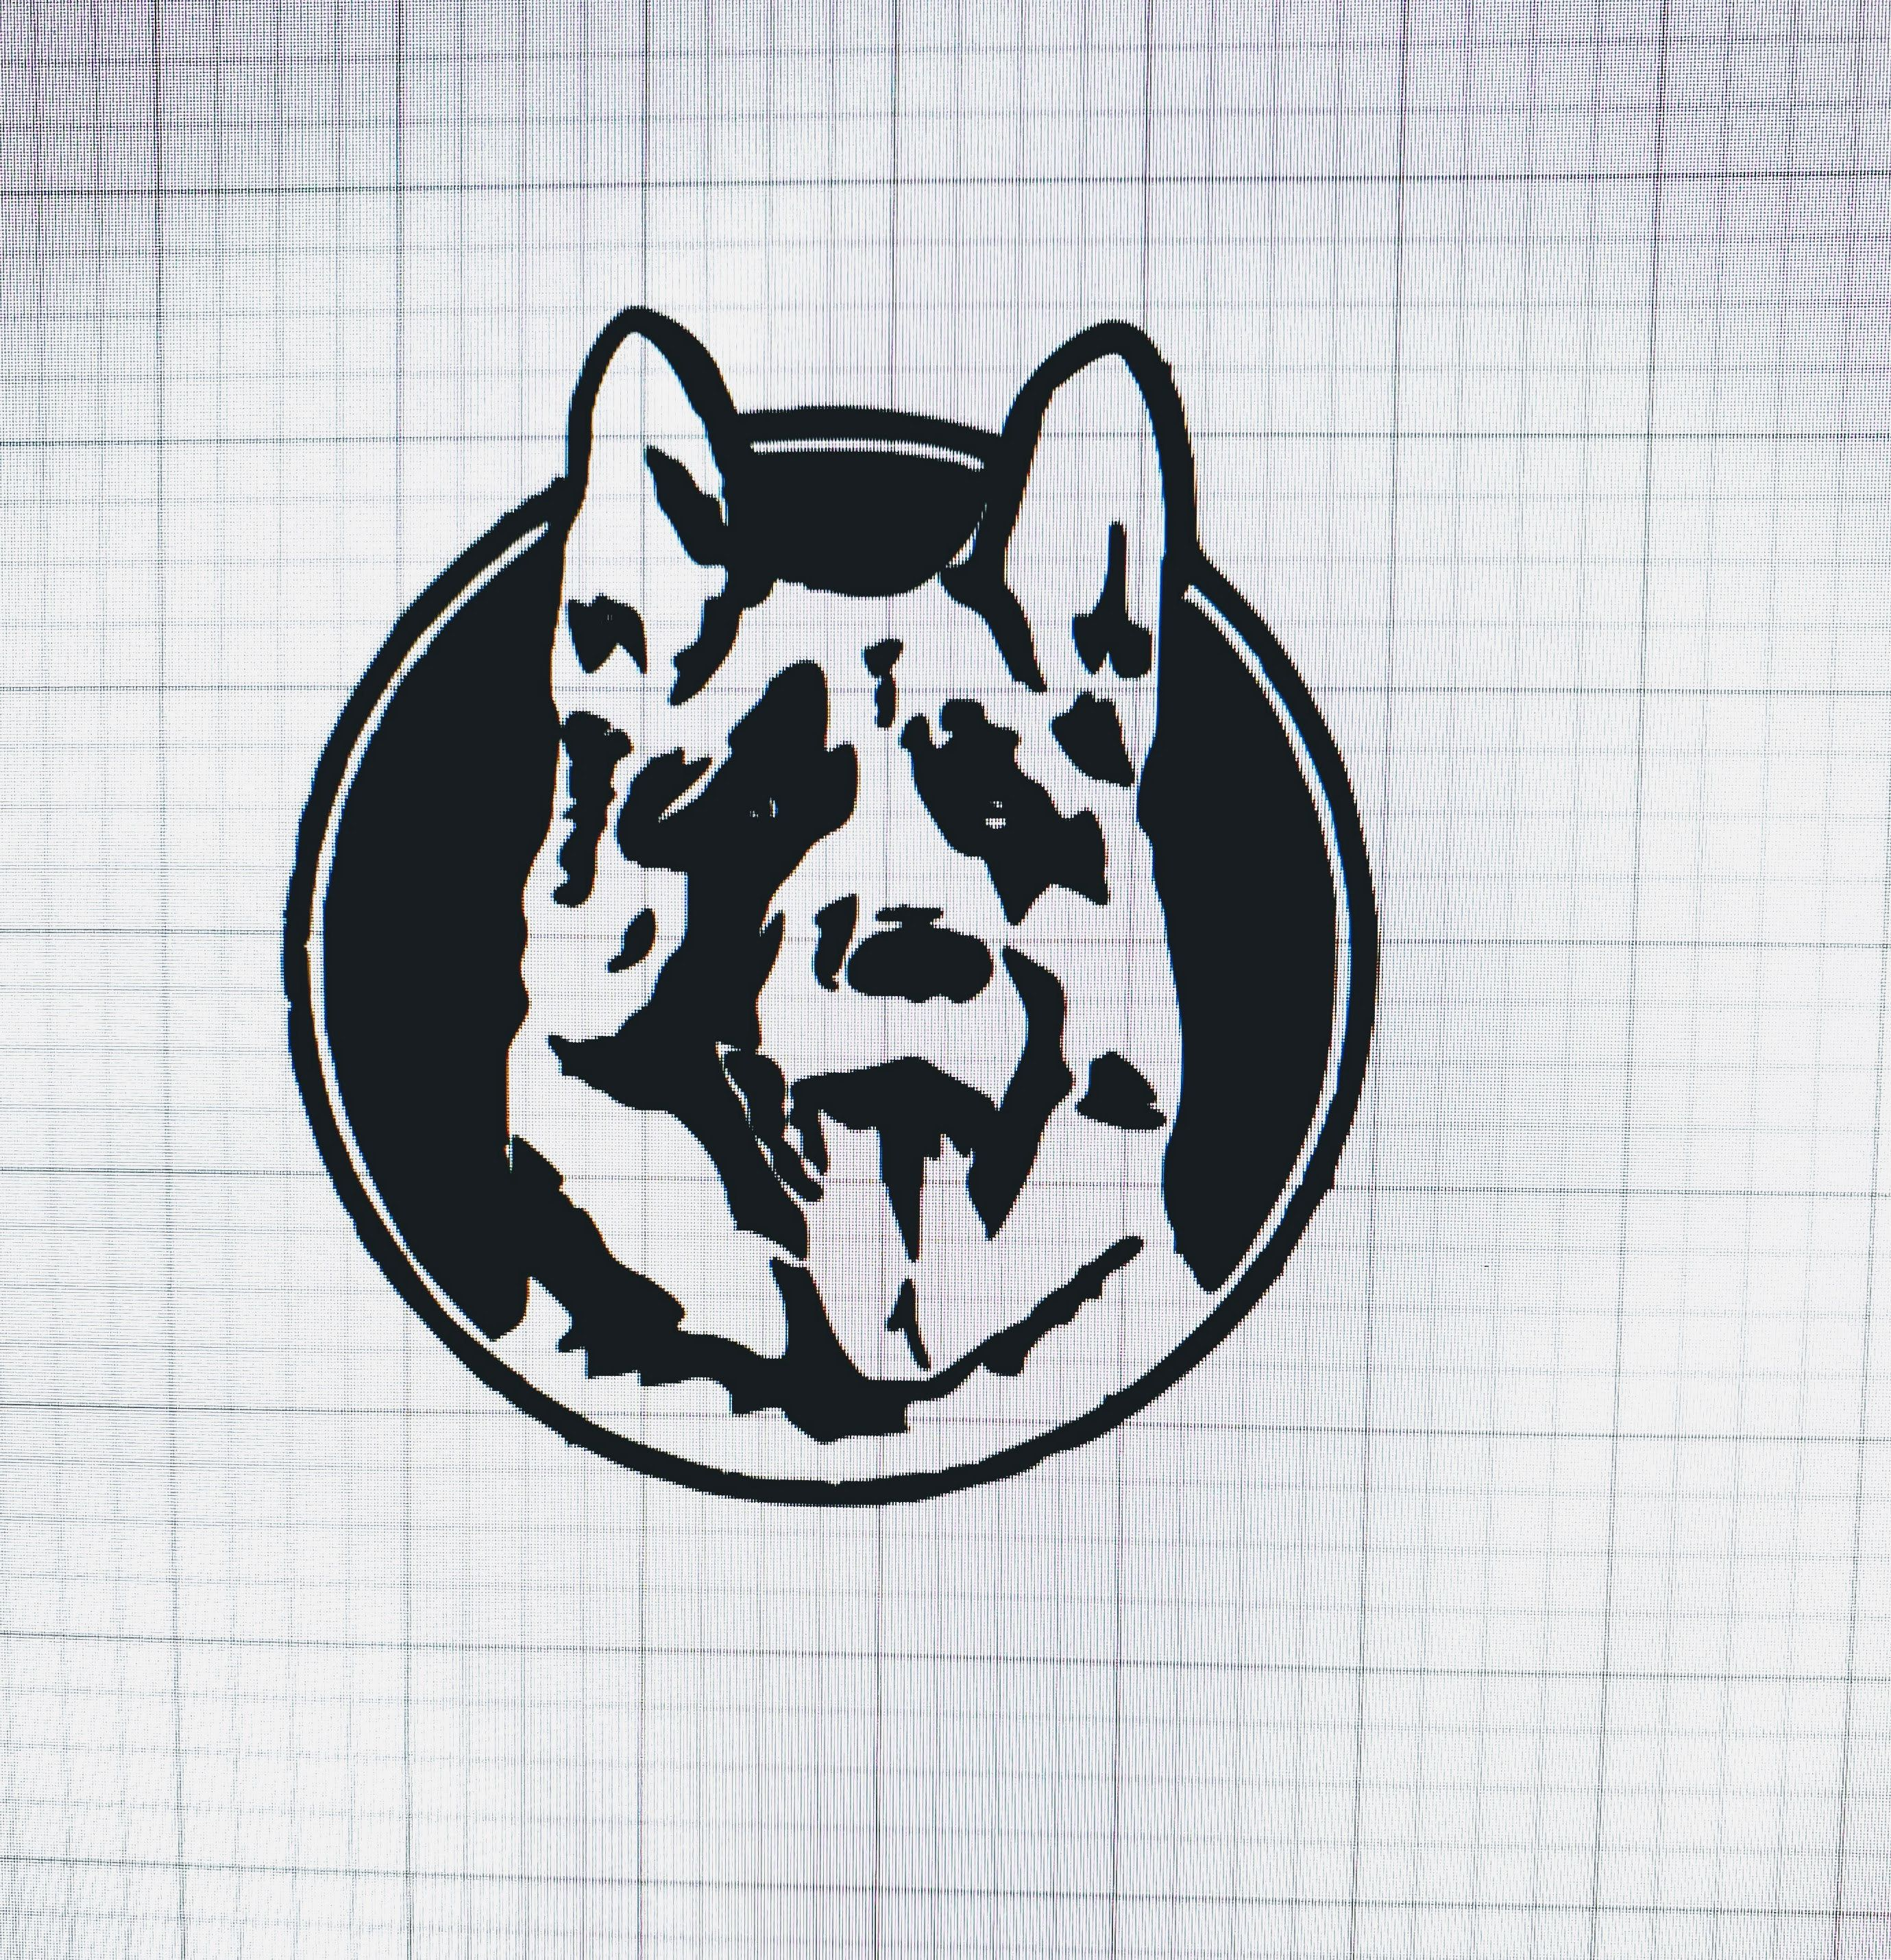 Excited To Share The Latest Addition To My Etsy Shop Letterkenny Inspired German Shepherd Letterkenny Inspired German Shepherd Tattoo Dog Decals Vinyl Decals [ 2859 x 2759 Pixel ]